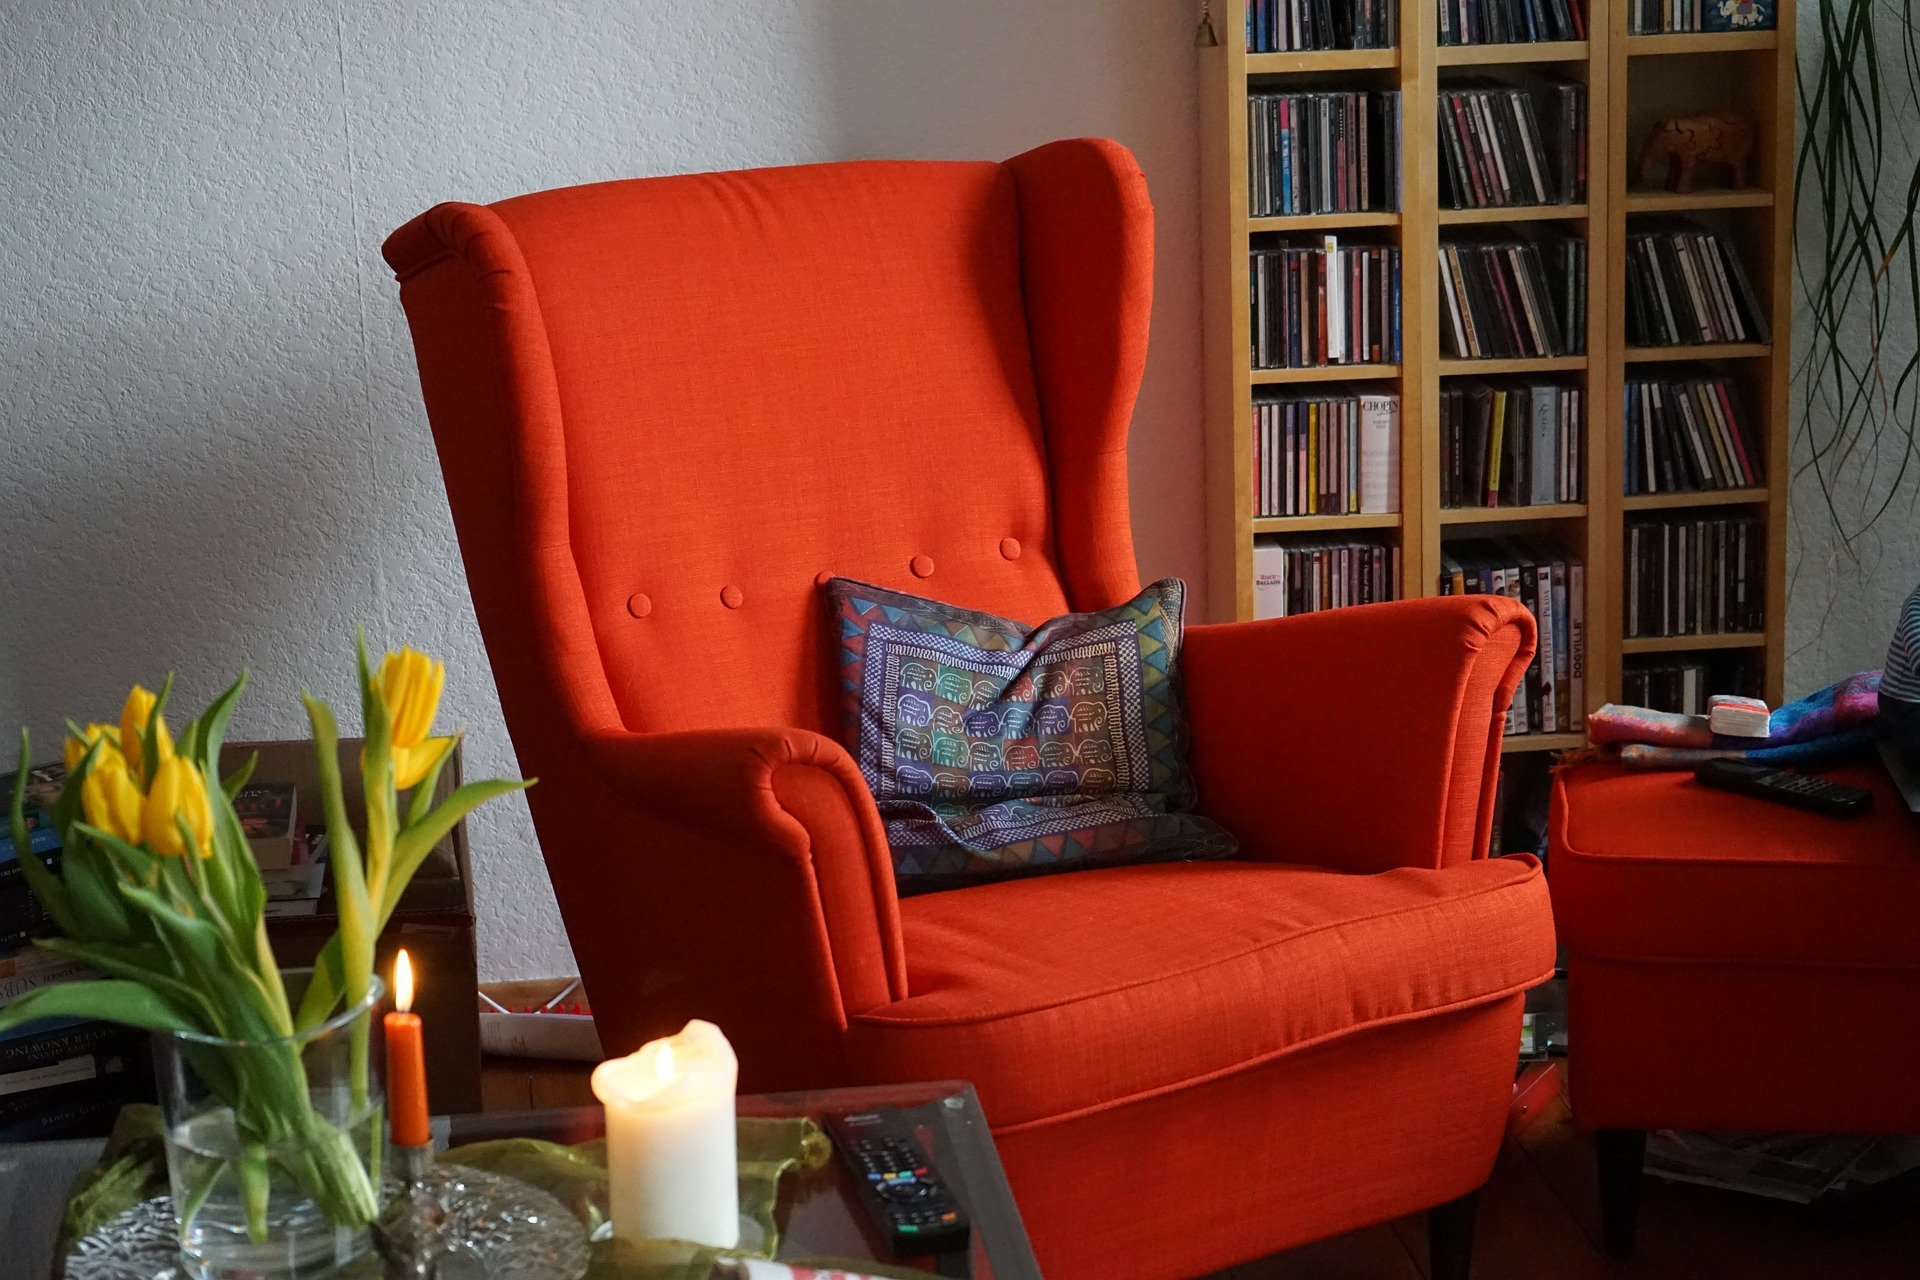 Red couch that represents the fire element.